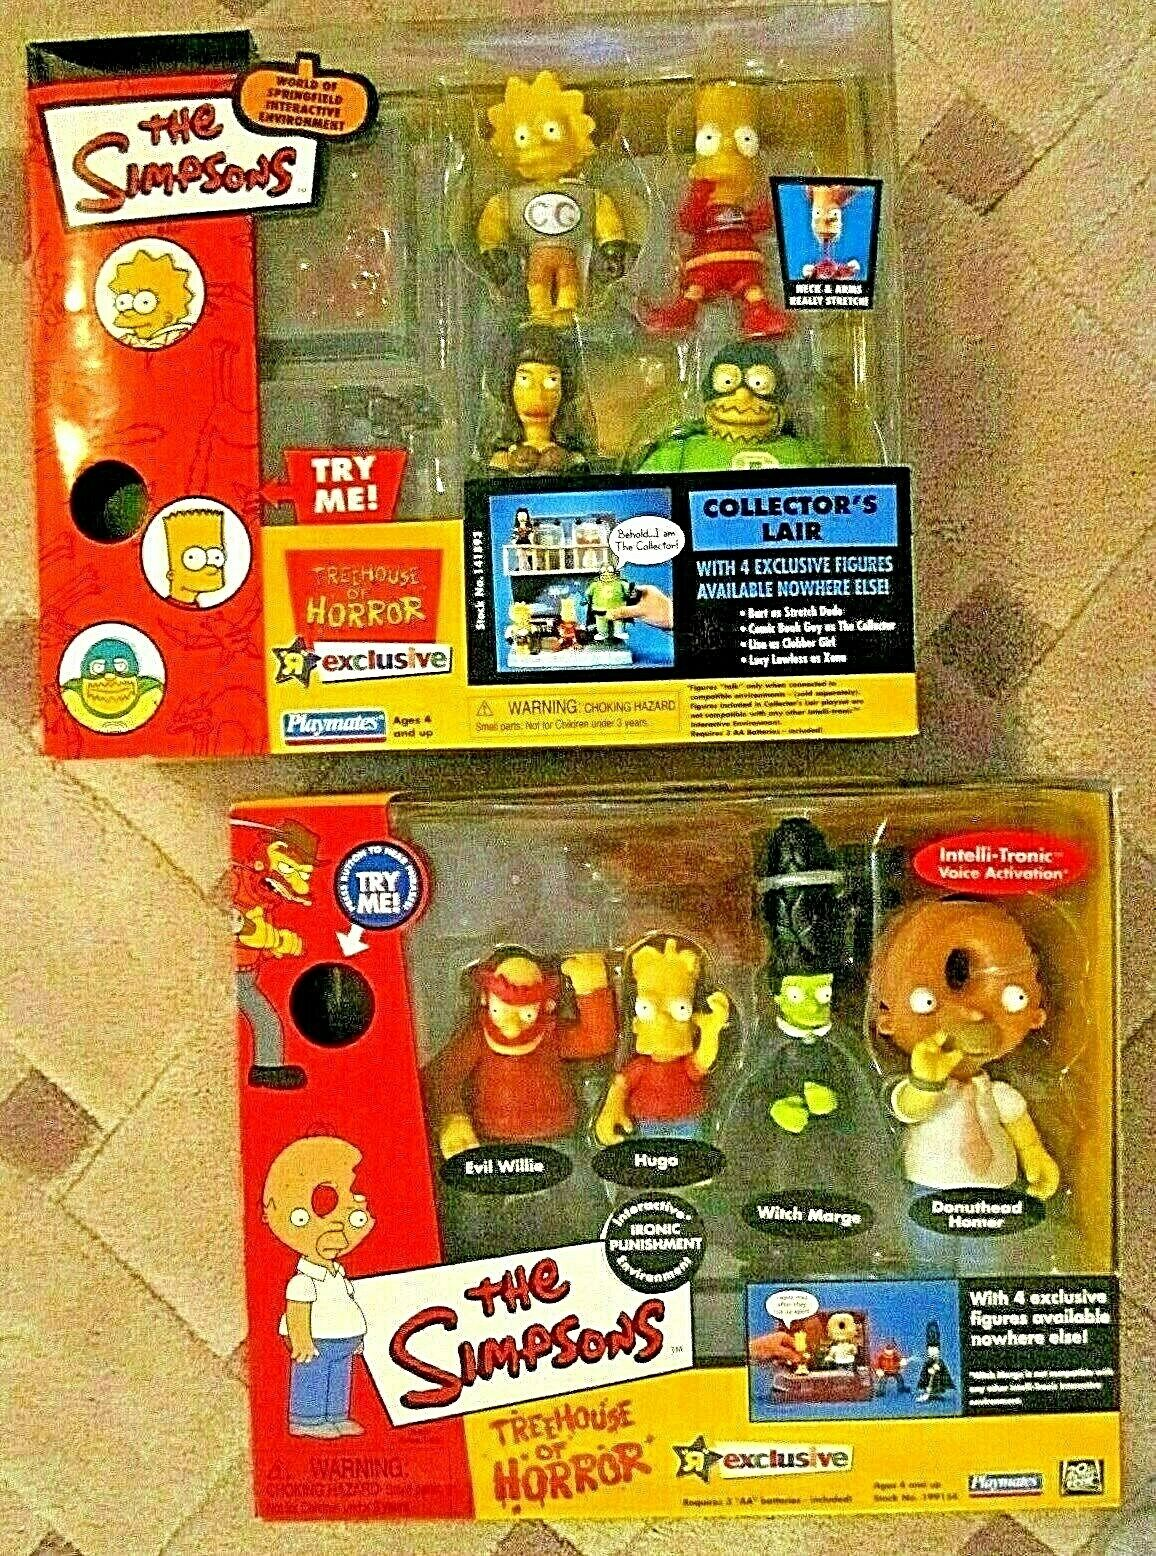 TWO PLAYMATES SIMSONS TREEHOUSE OF HORROR NIB 2002 2003 SEALED VOICE ACTIVATED